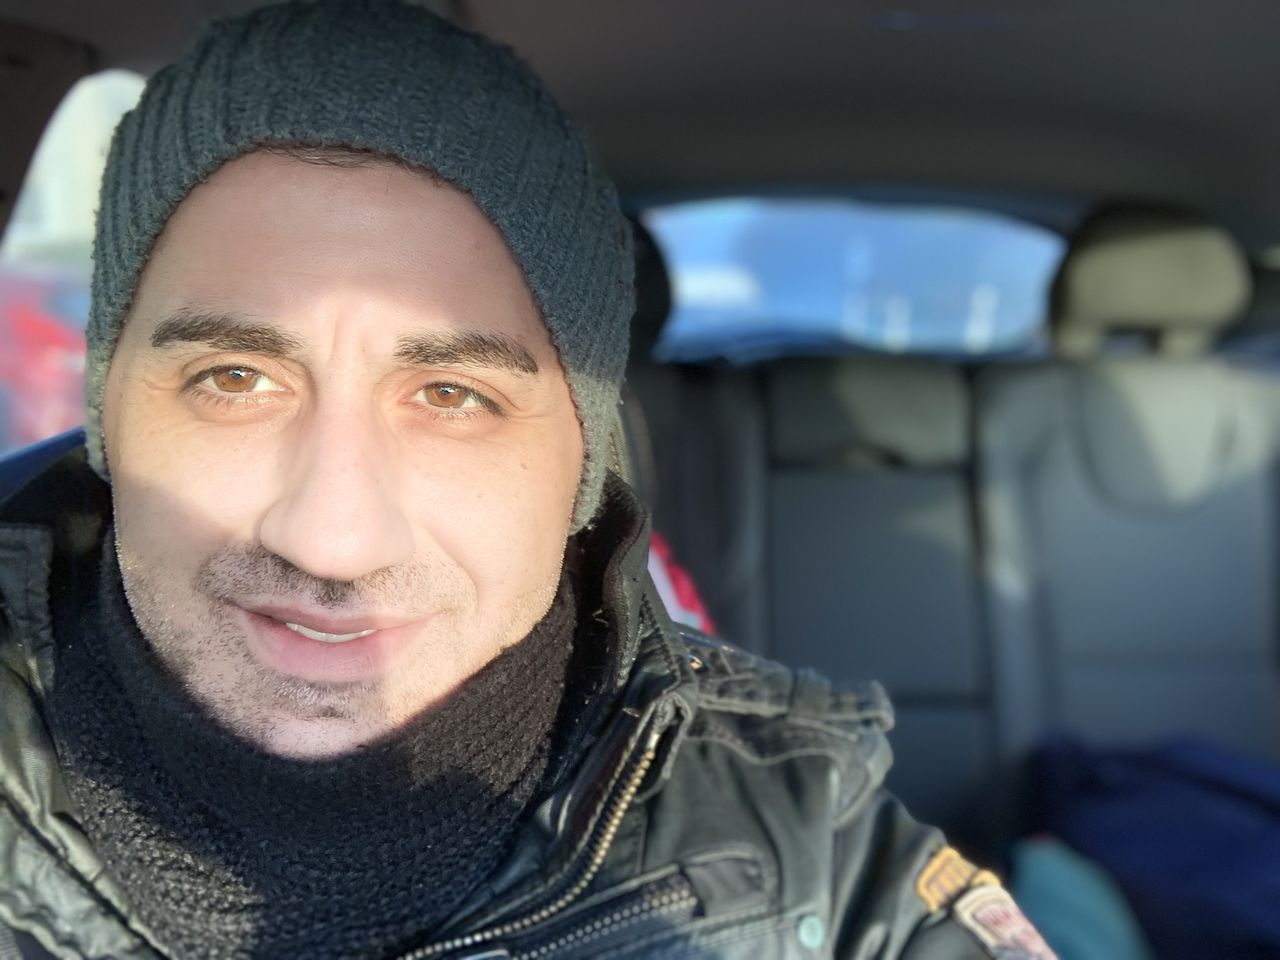 portrait, smiling, one person, mode of transportation, vehicle interior, clothing, transportation, looking at camera, warm clothing, winter, real people, headshot, car, motor vehicle, lifestyles, front view, leisure activity, travel, scarf